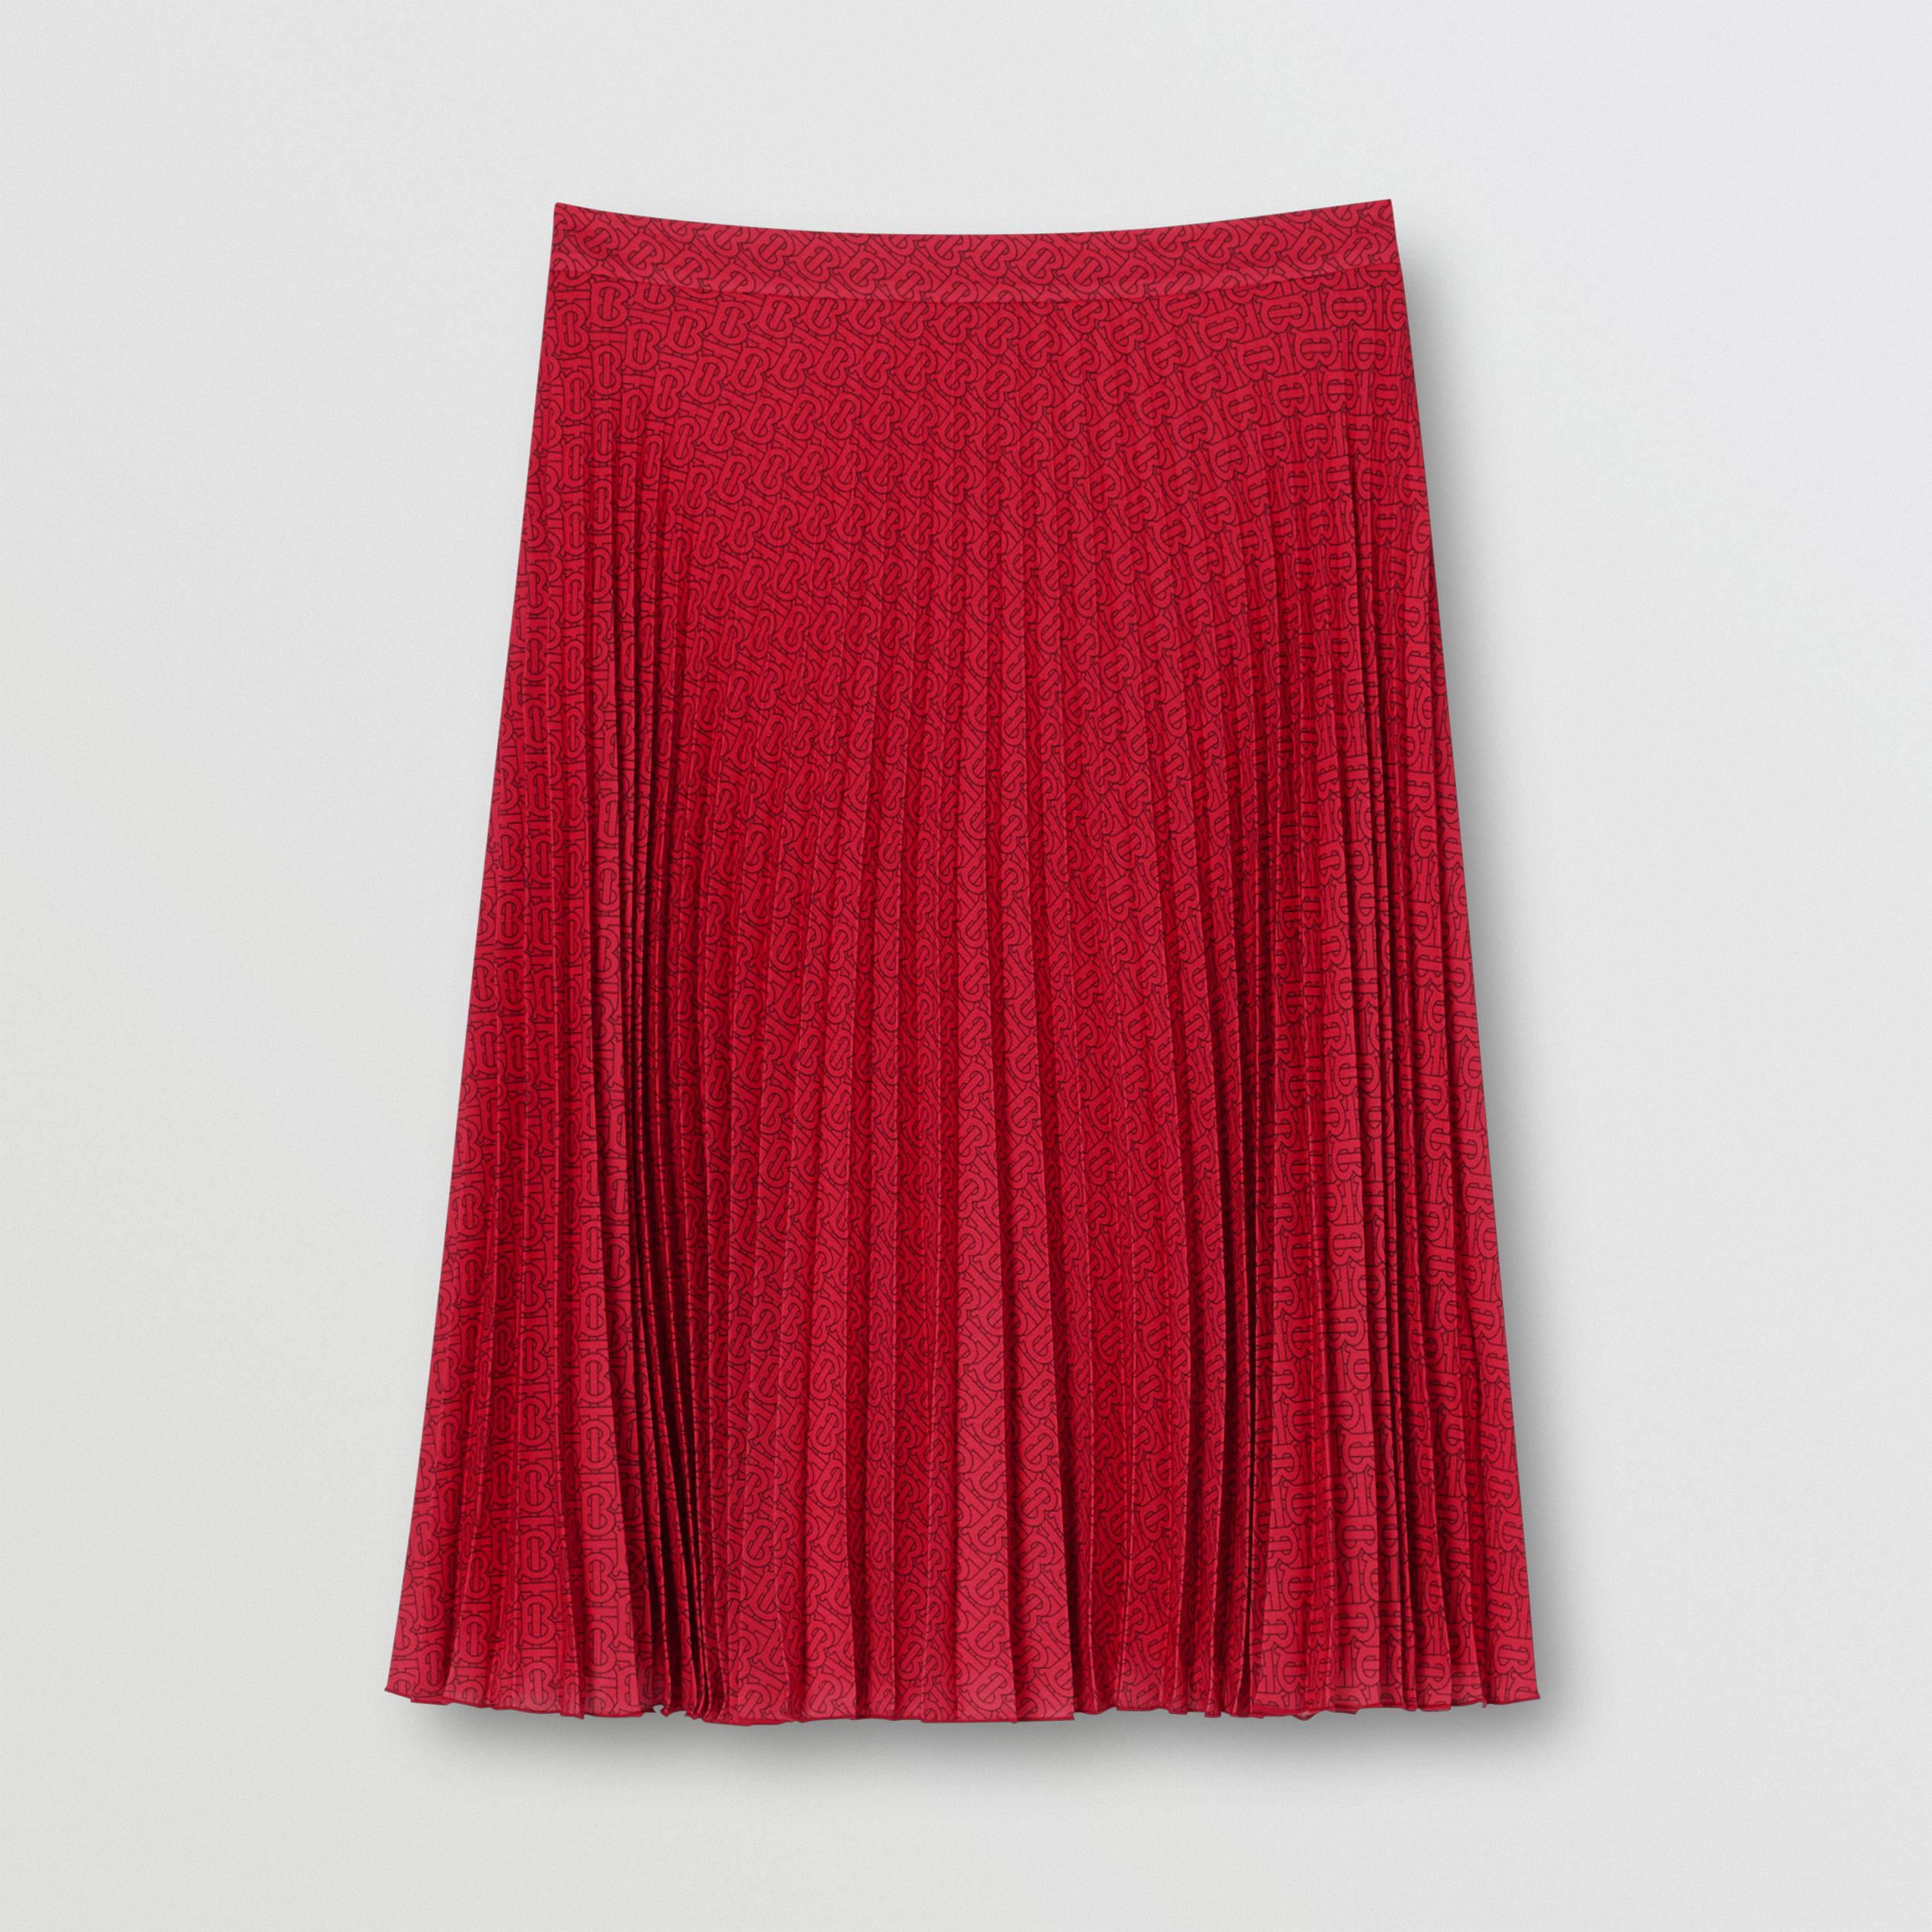 Monogram Print Pleated Skirt in Bright Red - Women | Burberry - 4